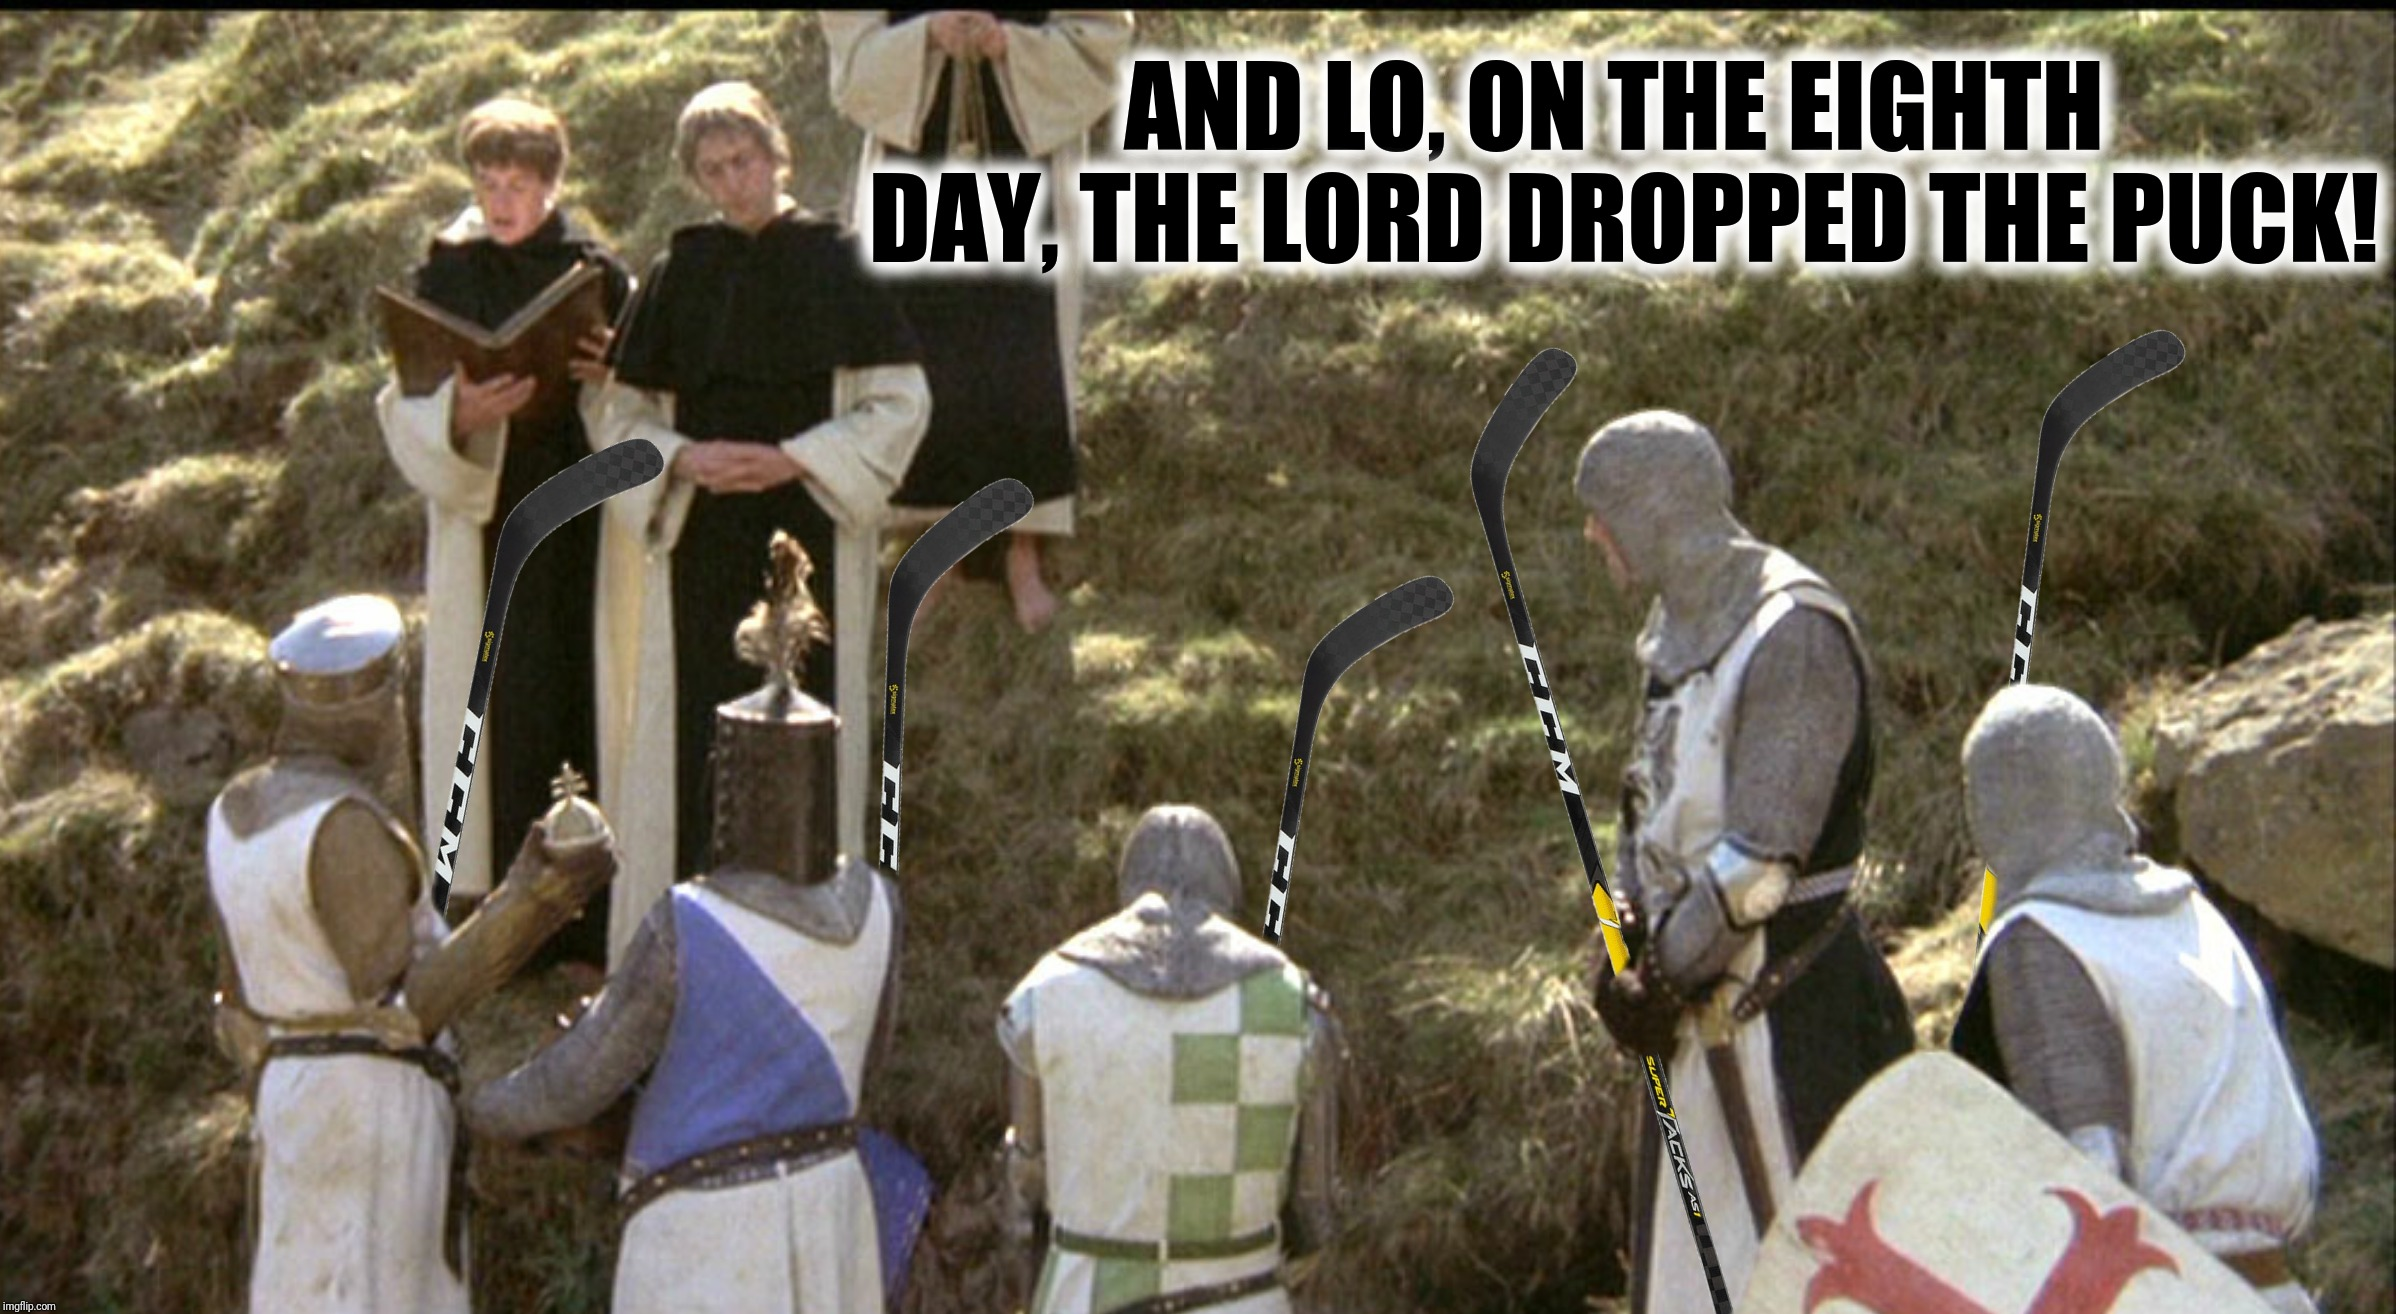 Bad Photoshop Sunday presents:  One does not simply play hockey without a day of rest! | AND LO, ON THE EIGHTH DAY, THE LORD DROPPED THE PUCK! | image tagged in bad photoshop sunday,hockey,monty python and the holy grail | made w/ Imgflip meme maker